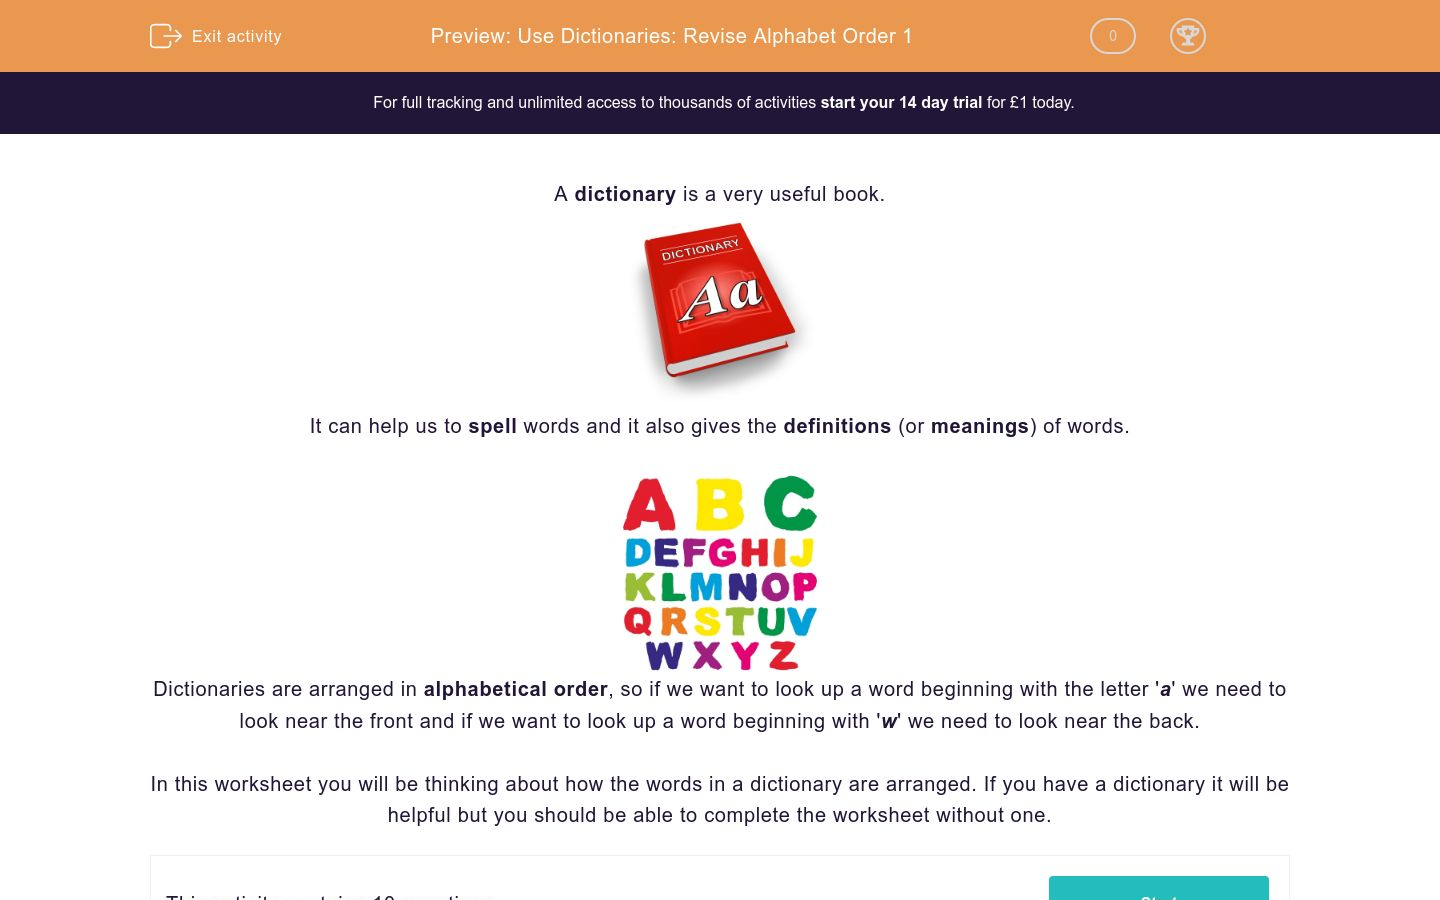 'Use Dictionaries: Revise Alphabet Order 1' worksheet